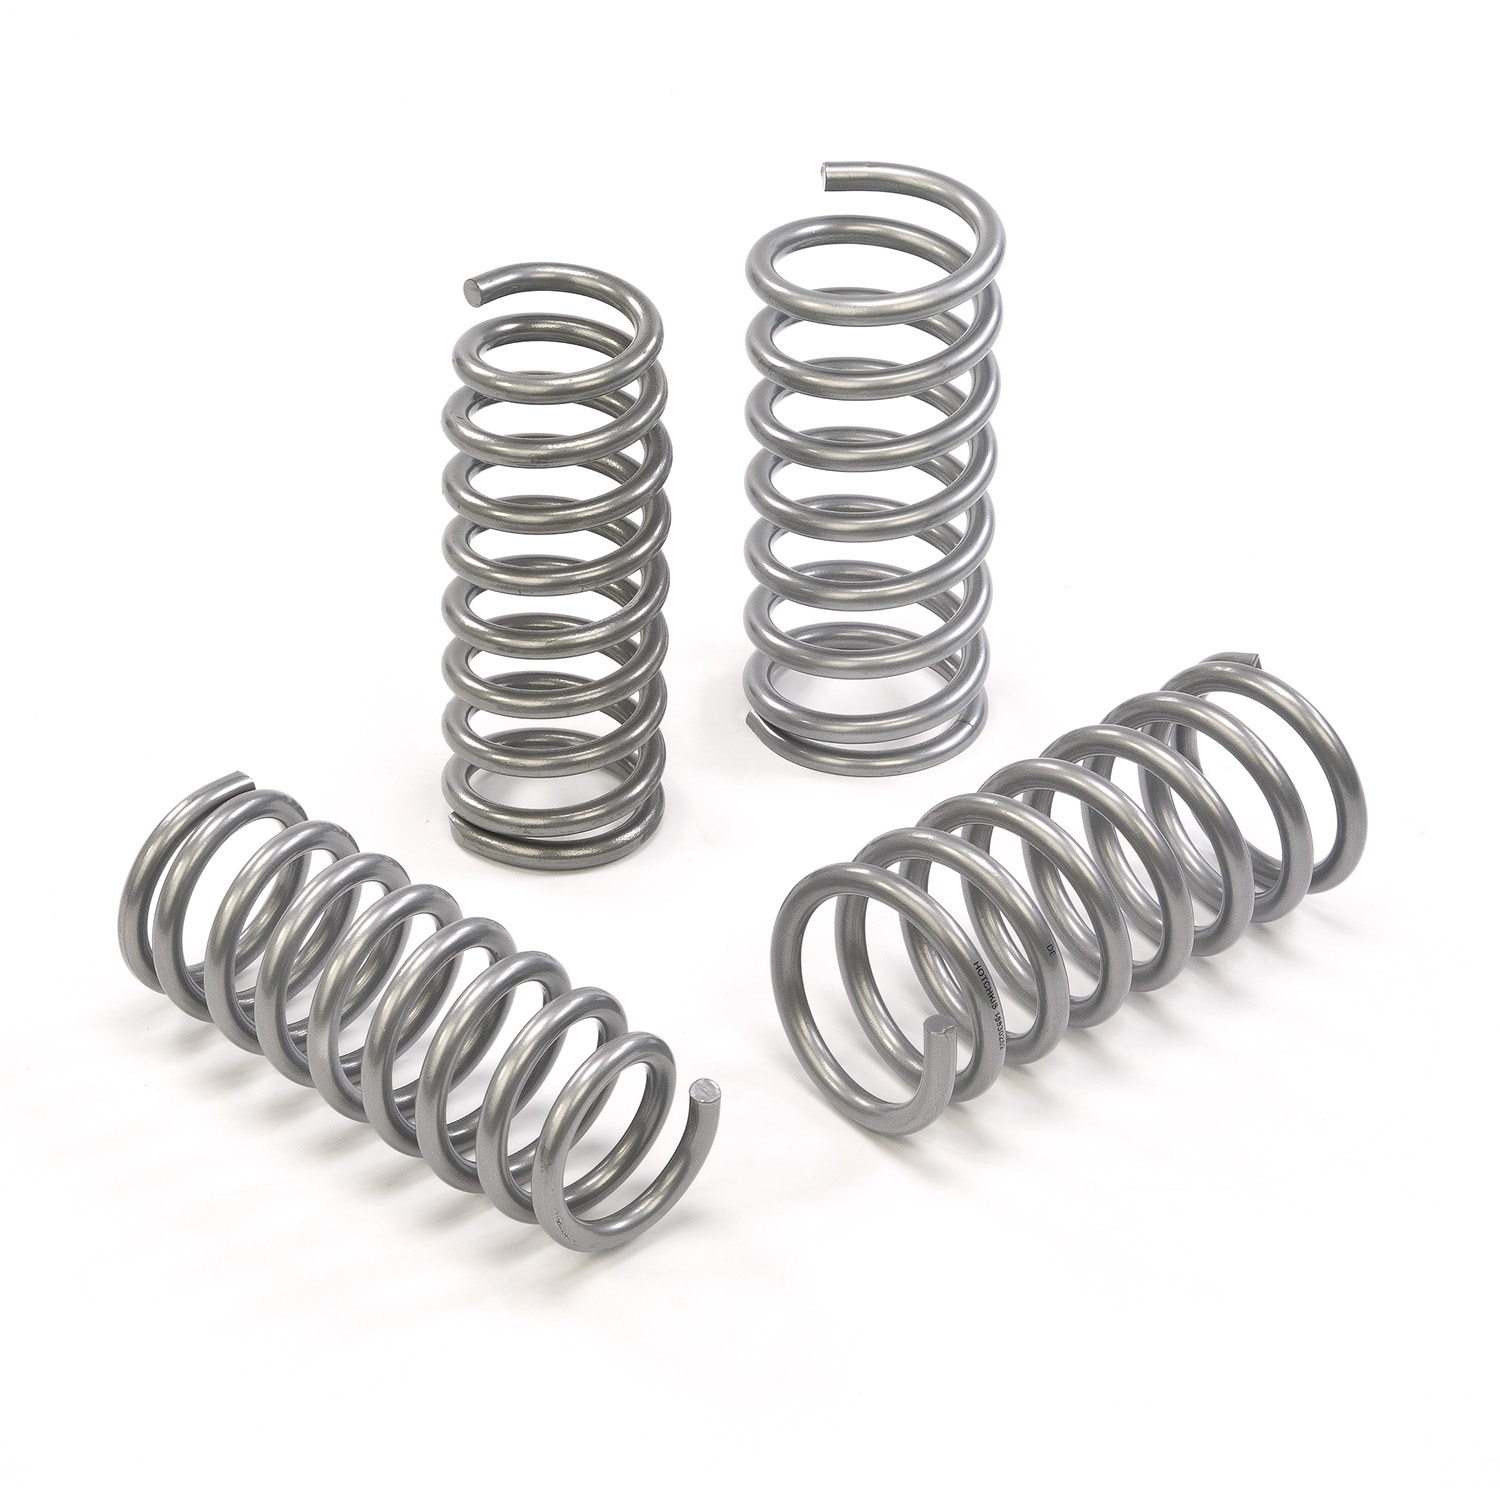 03-08 Nissan 350Z  03-07 Infiniti G35 Coupe 3/4 in. Performance Lower Spring set